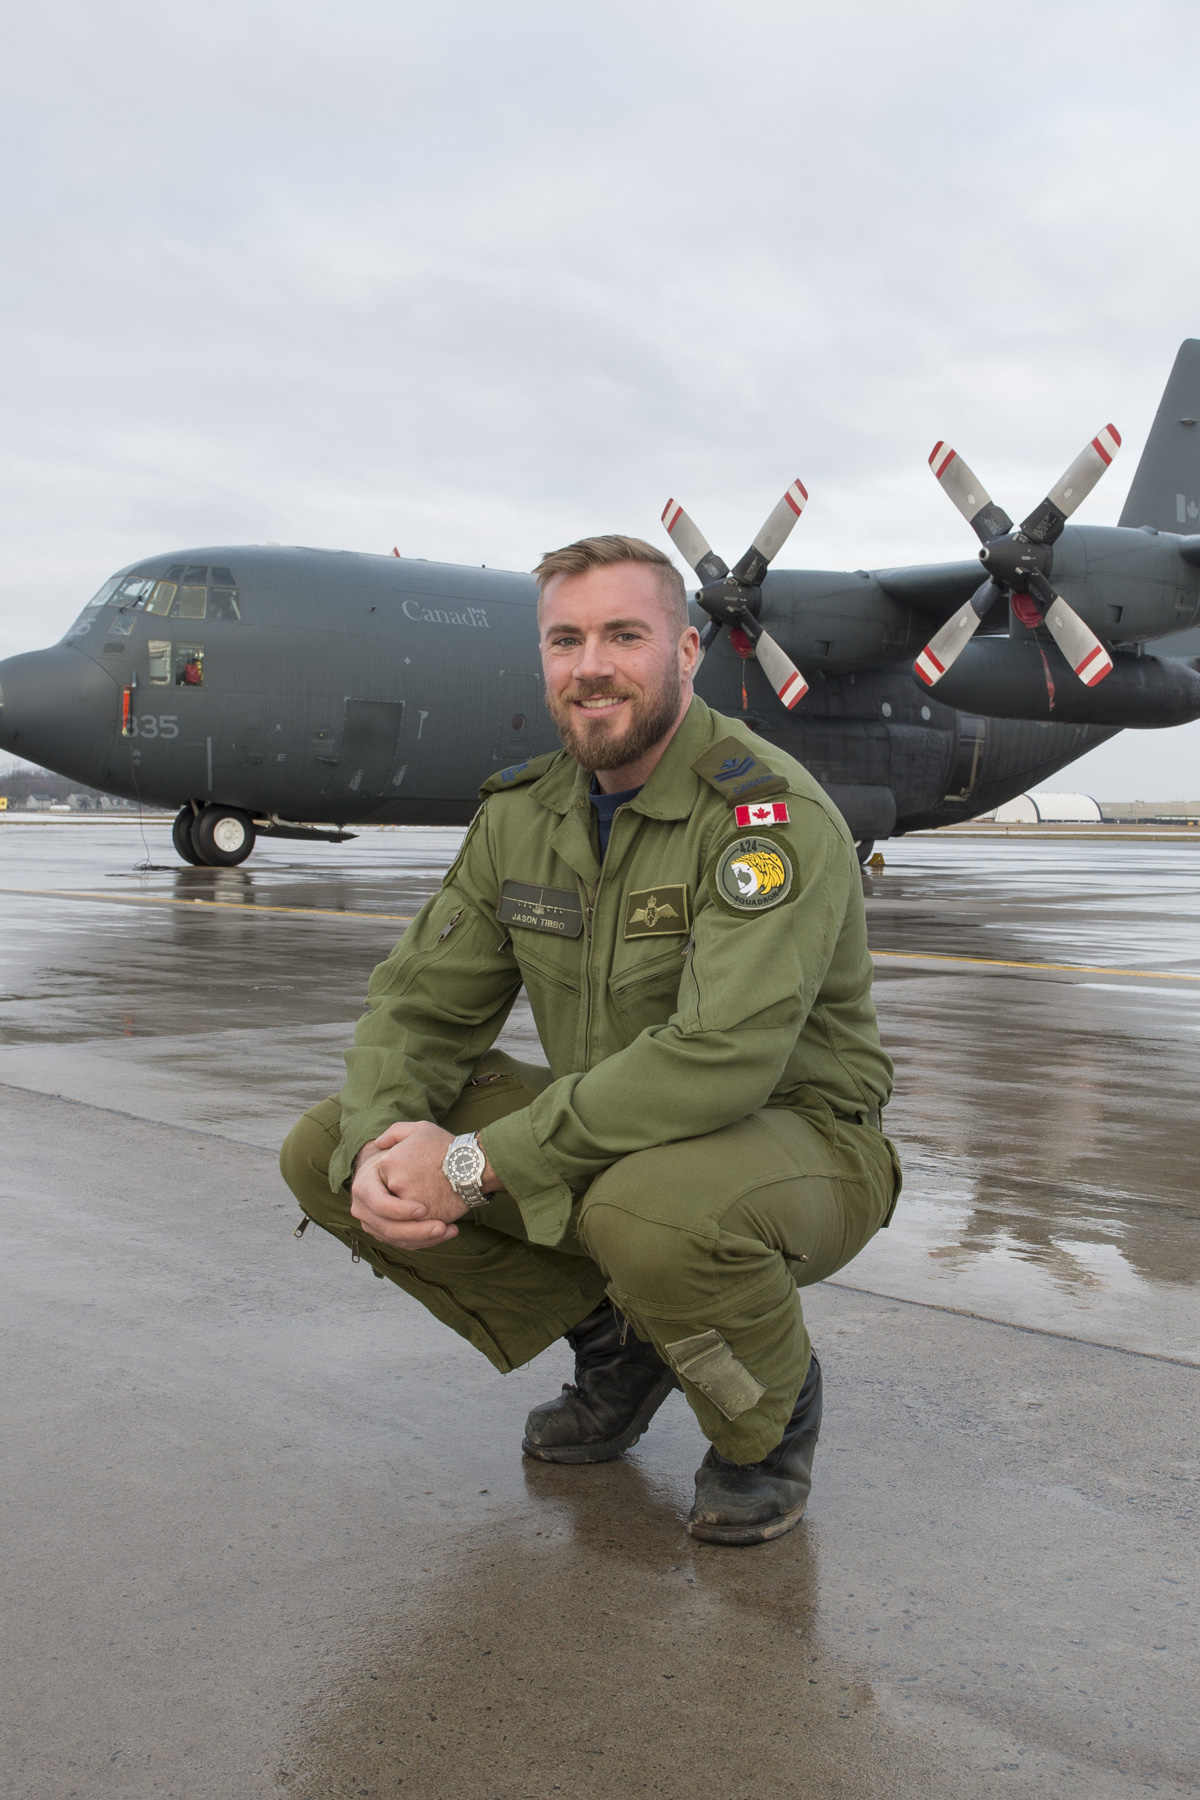 Master Corporal Jason Tibbo, Flight Engineer for the Baker Lake SAR mission, poses in front of a CC-130H Hercules at 8 Wing Trenton, 19 January, 2017. (Photo credit: Corporal Audrey Solomon, 8 Wing Imaging ©2017 DND-MDN Canada)